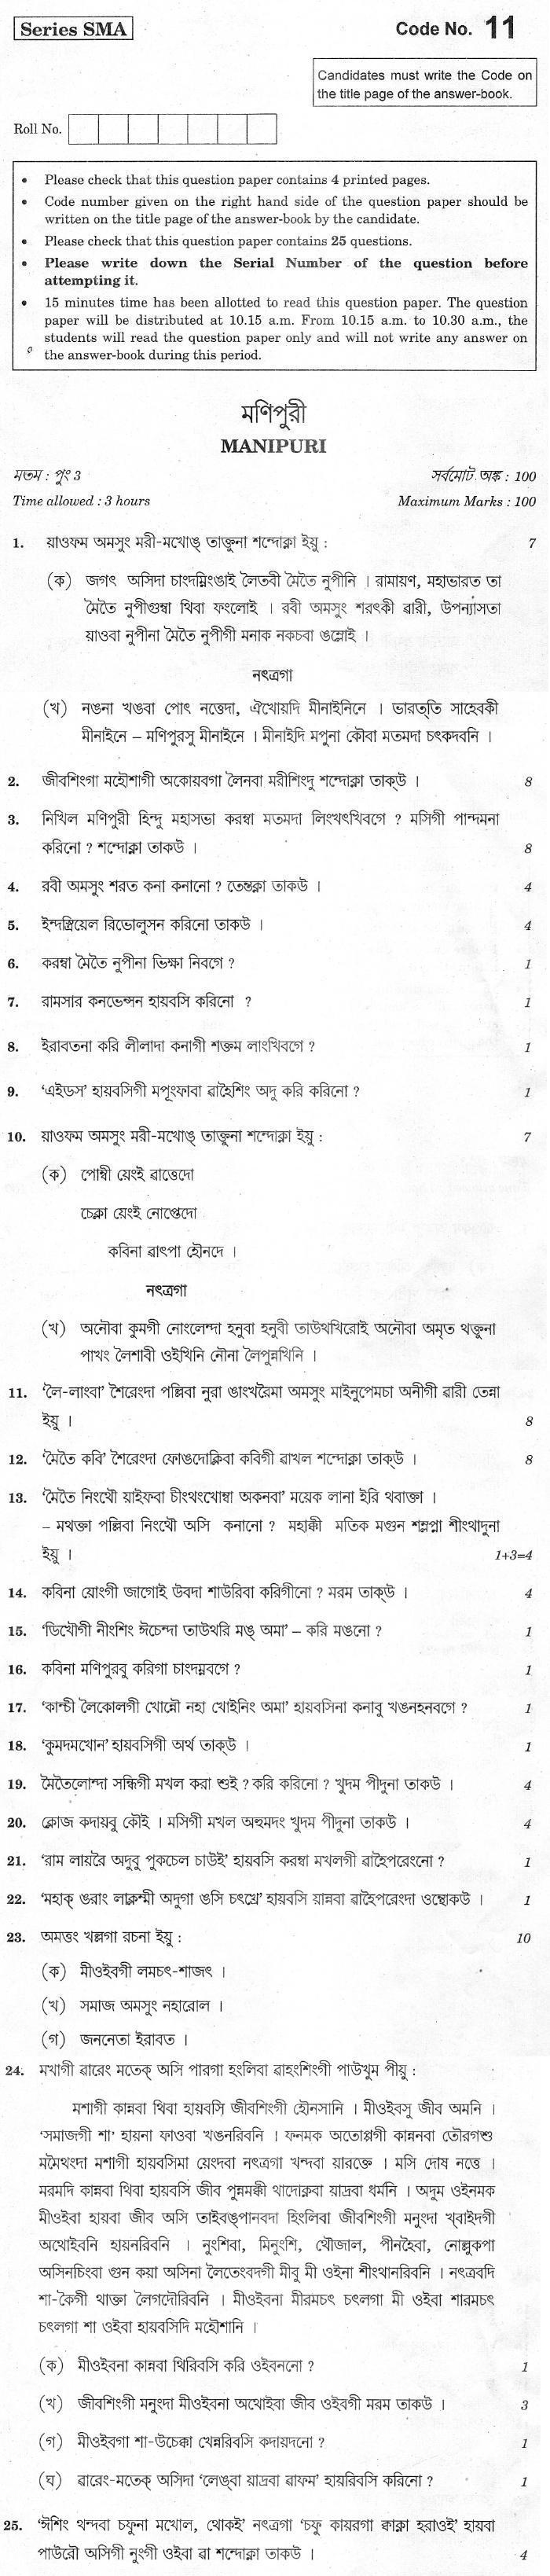 CBSE Class XII Previous Year Question Paper 2012 Manipuri